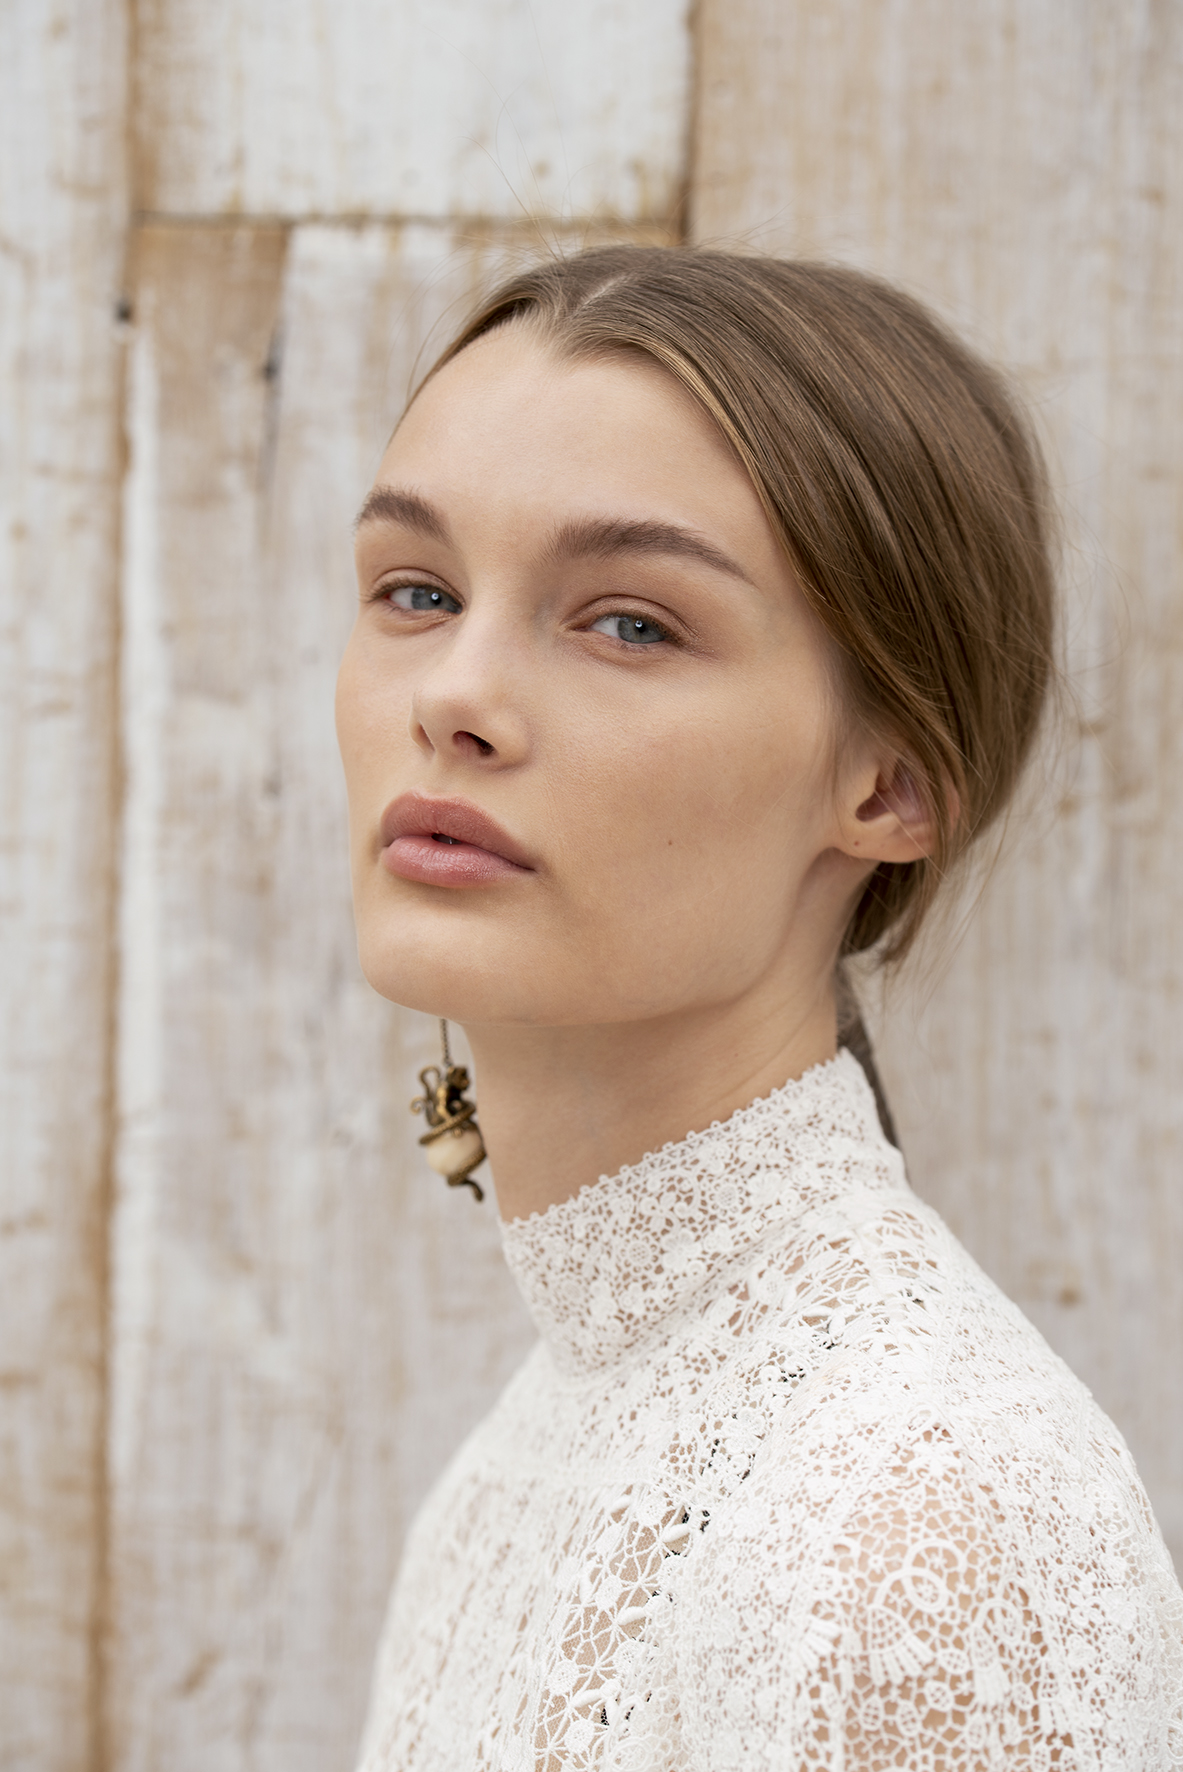 Dior Cruise Collection Makeup 2019: The Modern Adelitas of ...